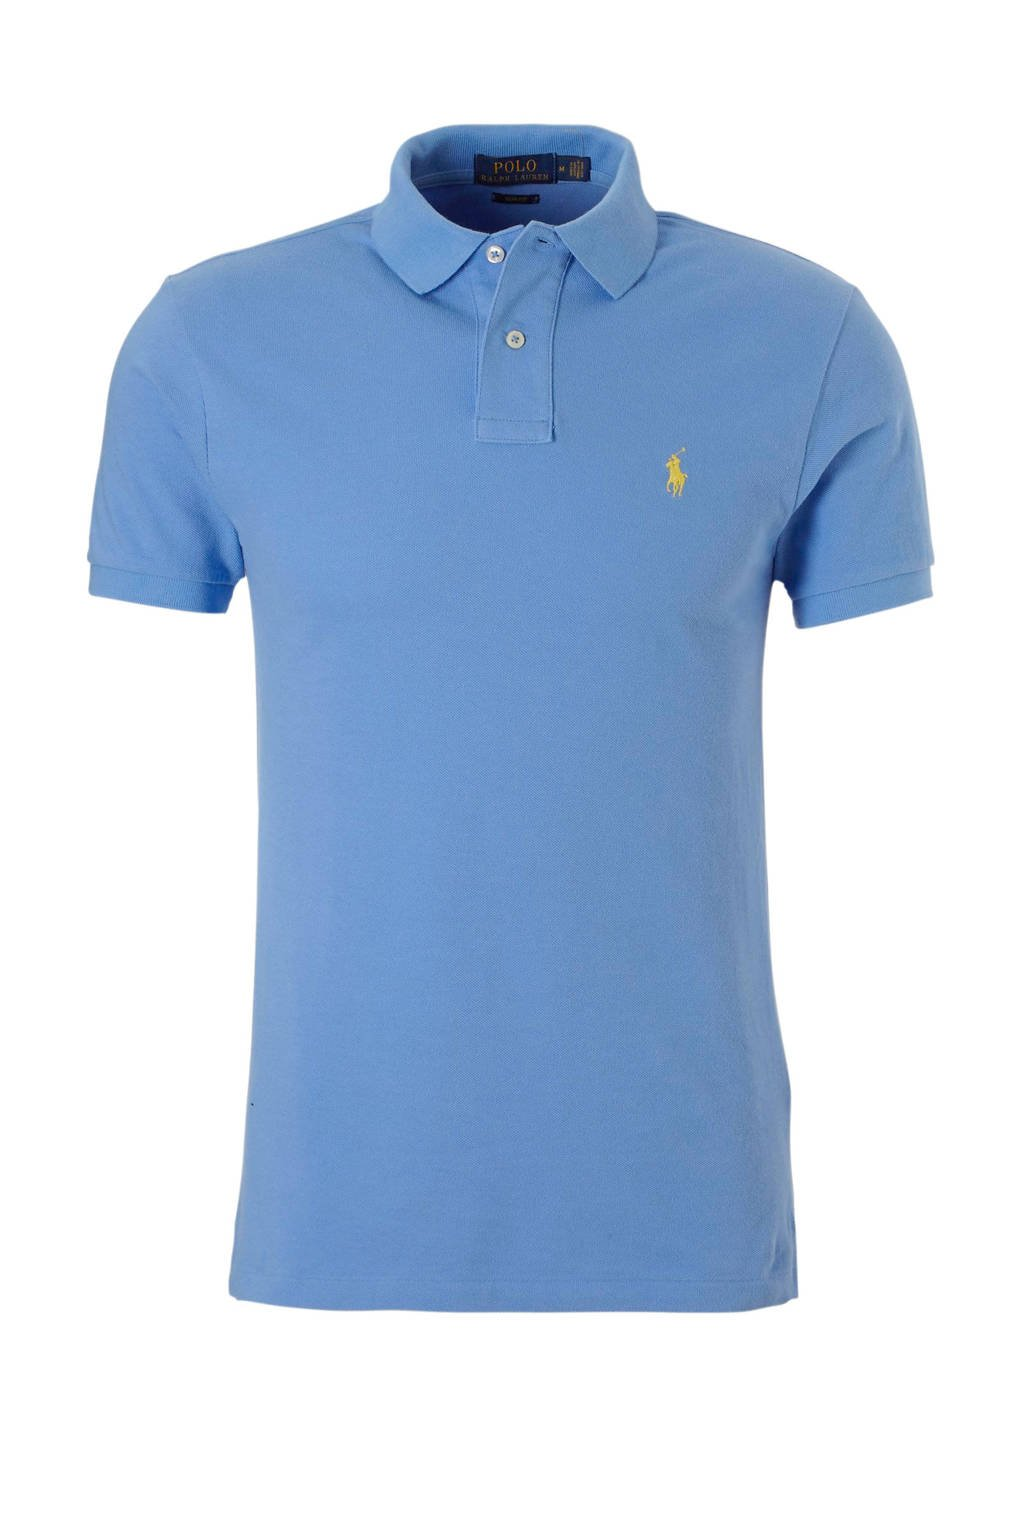 POLO Ralph Lauren slim fit polo blauw, Blauw